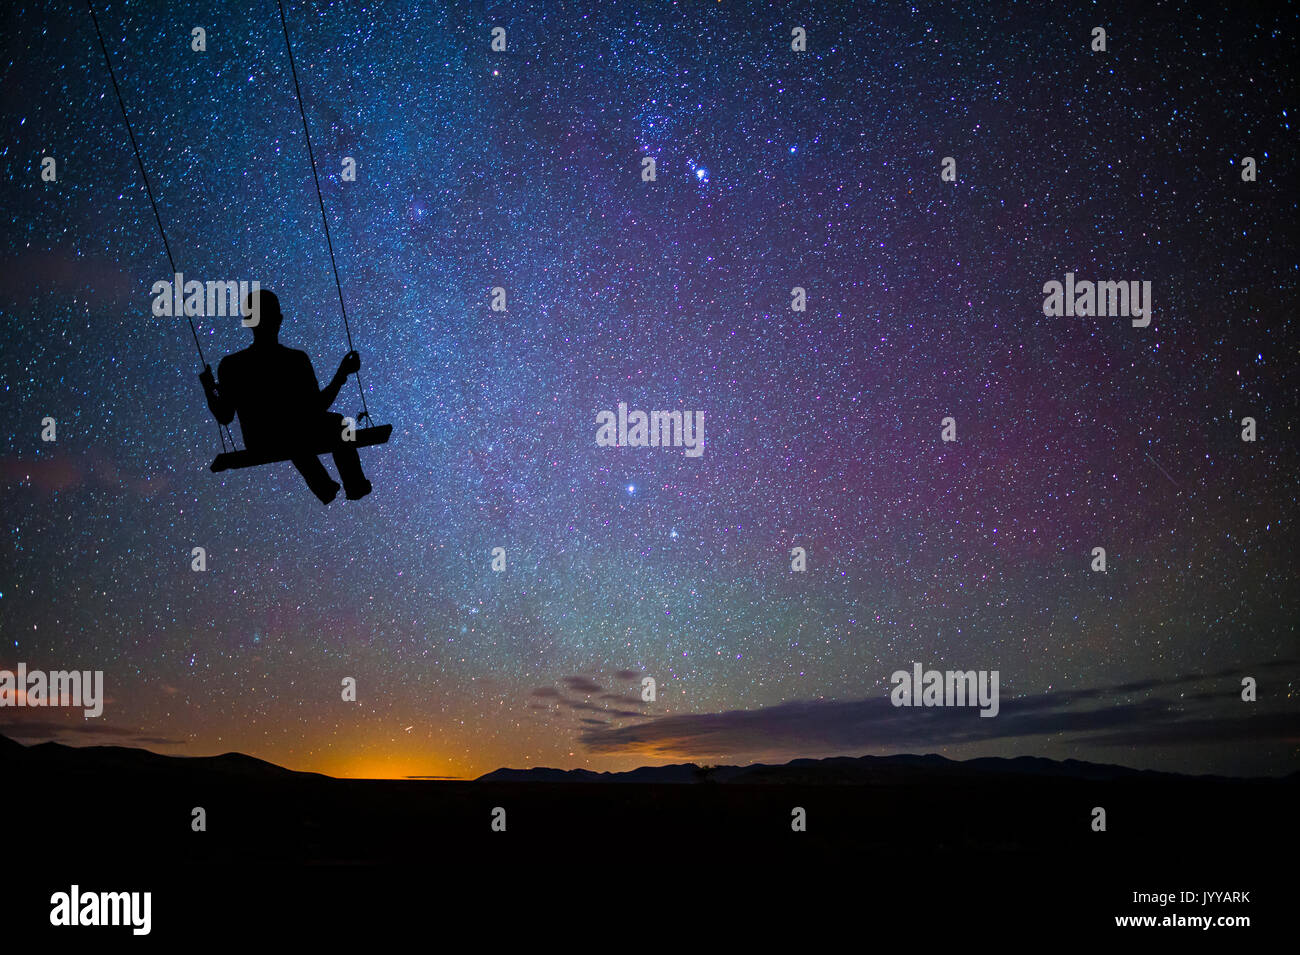 Child On Swing Swinging With The Stars At Night - Stock Image